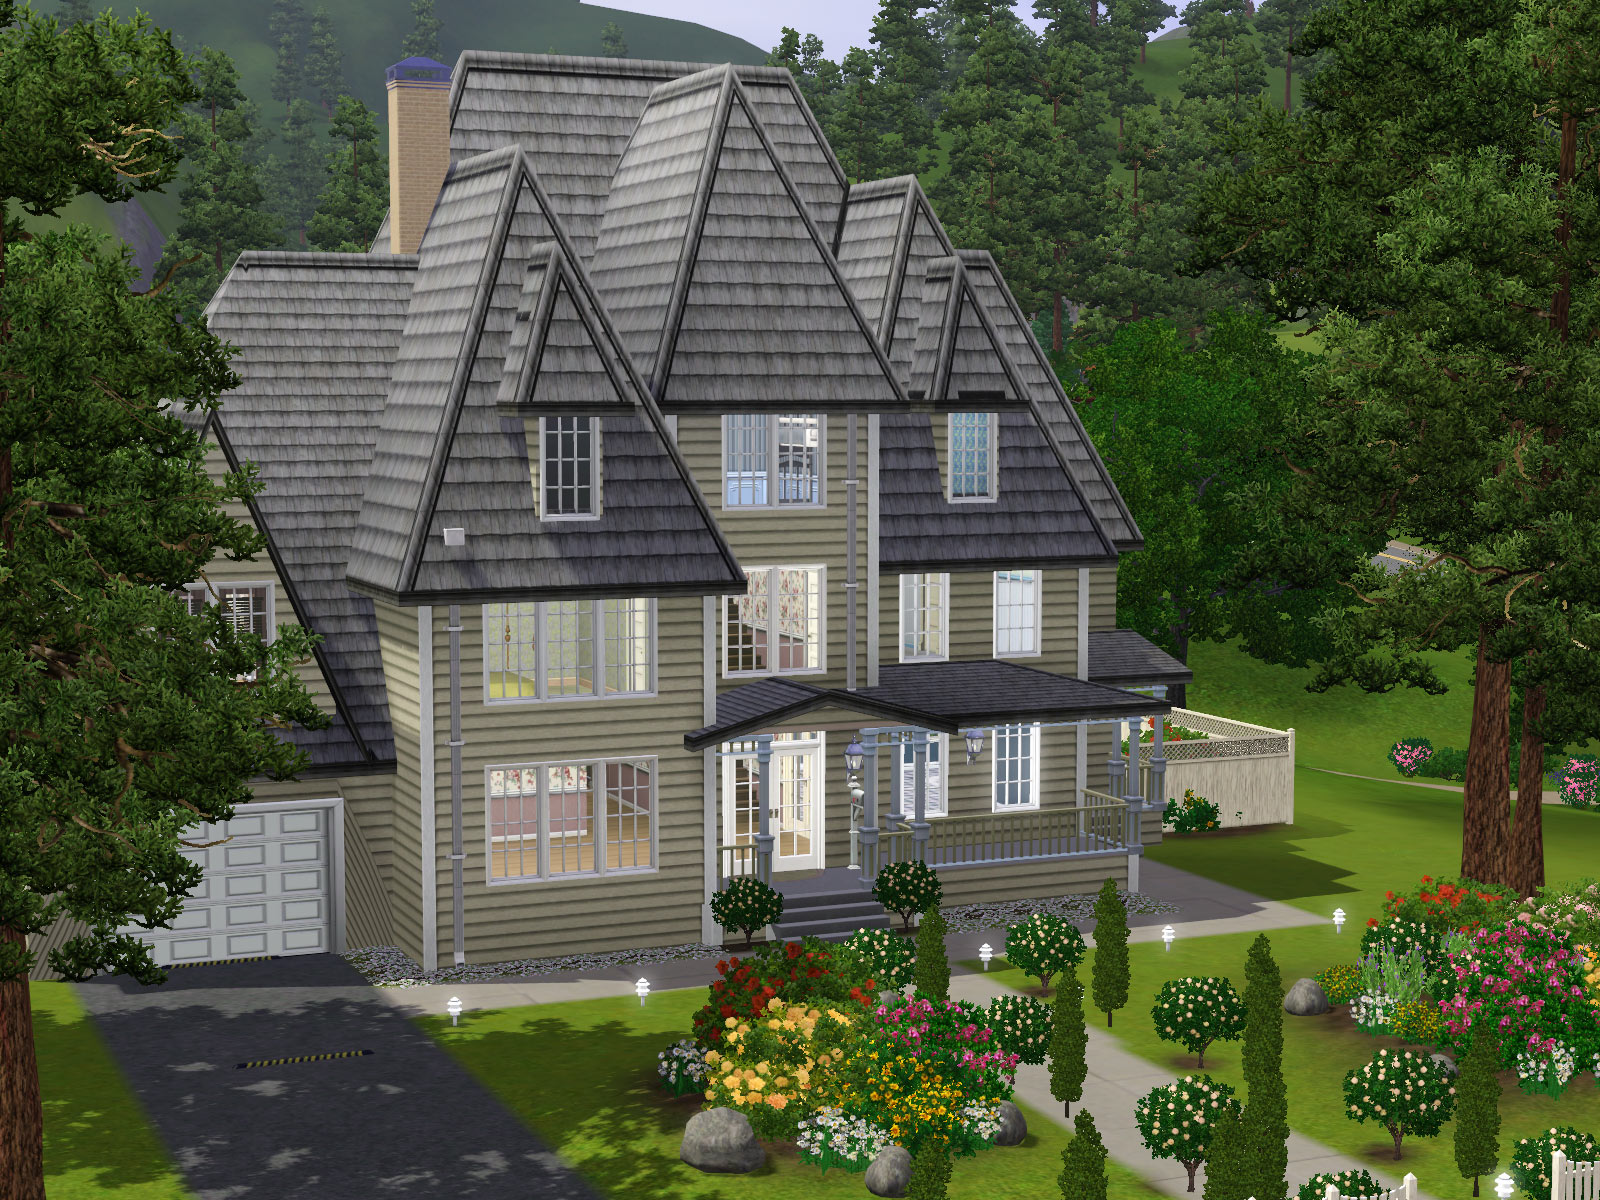 Parsimonious The Sims 3 Houses